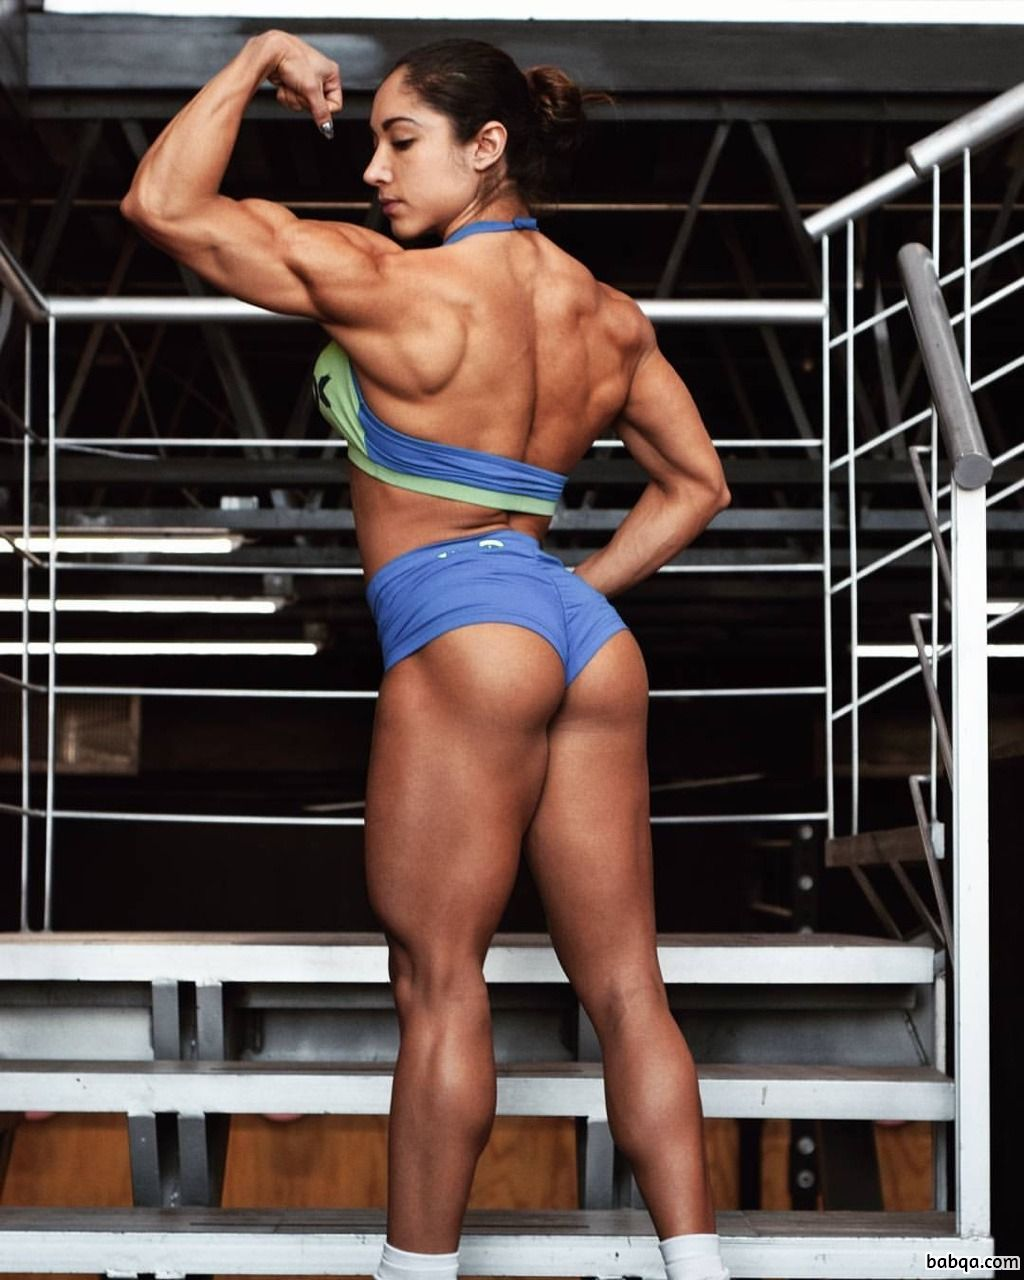 perfect woman with fitness body and muscle ass photo from reddit